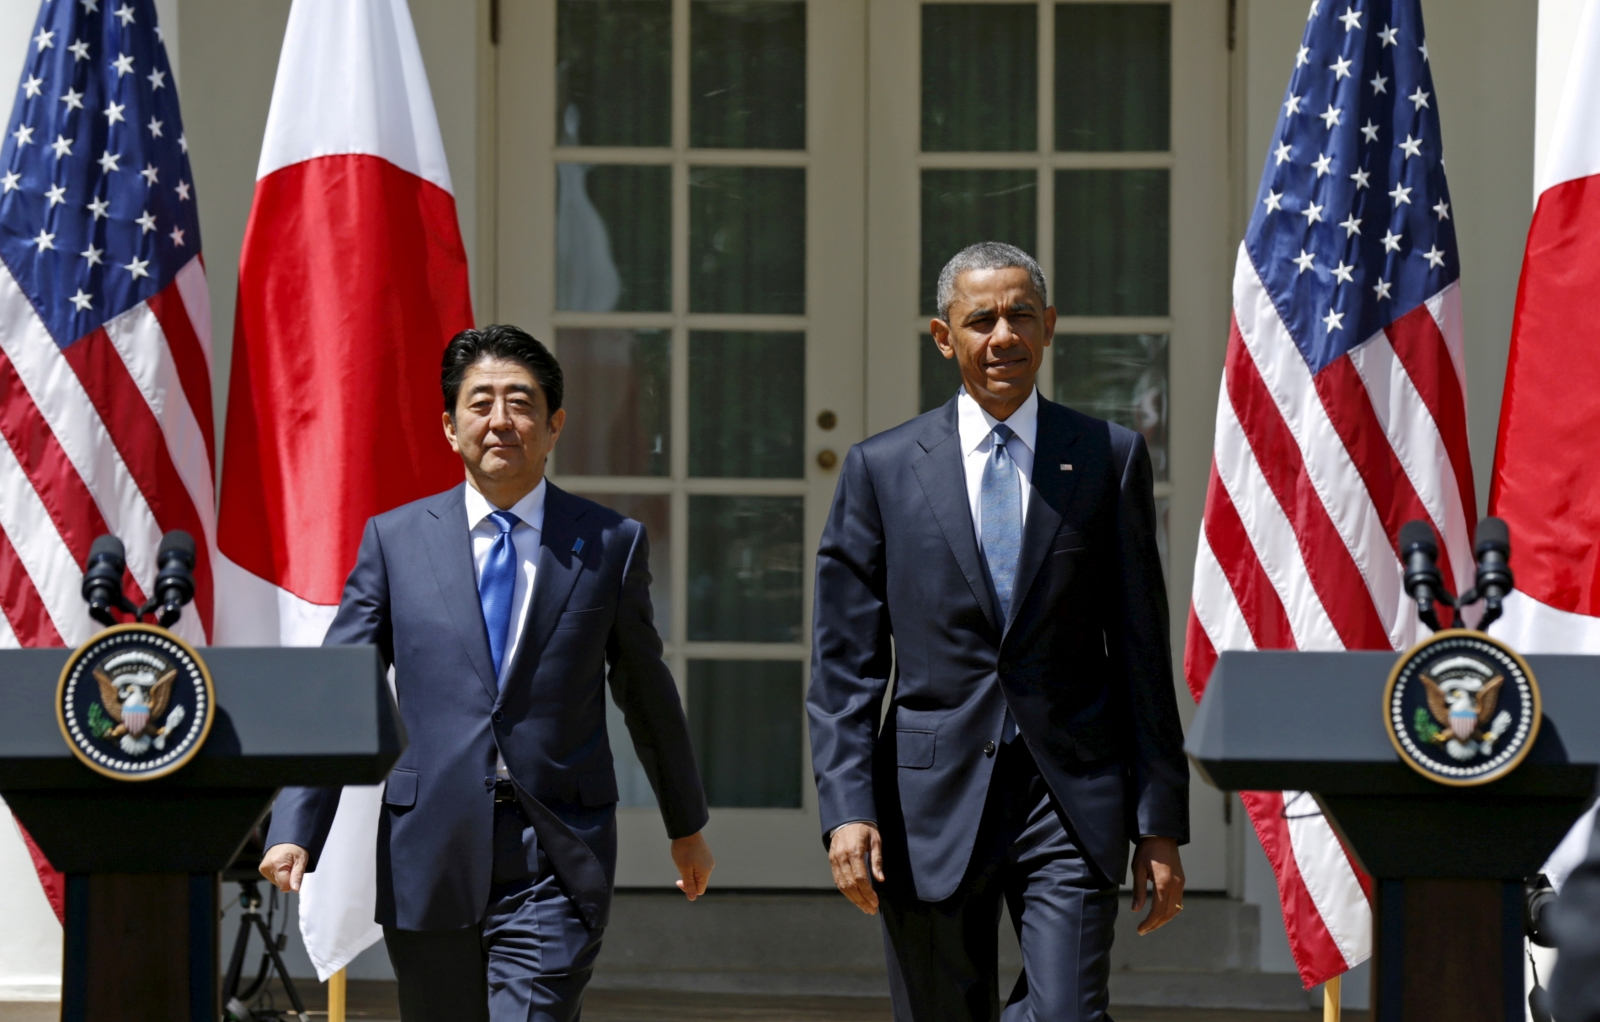 Japan's July 10 upper-house election: implications on US national security